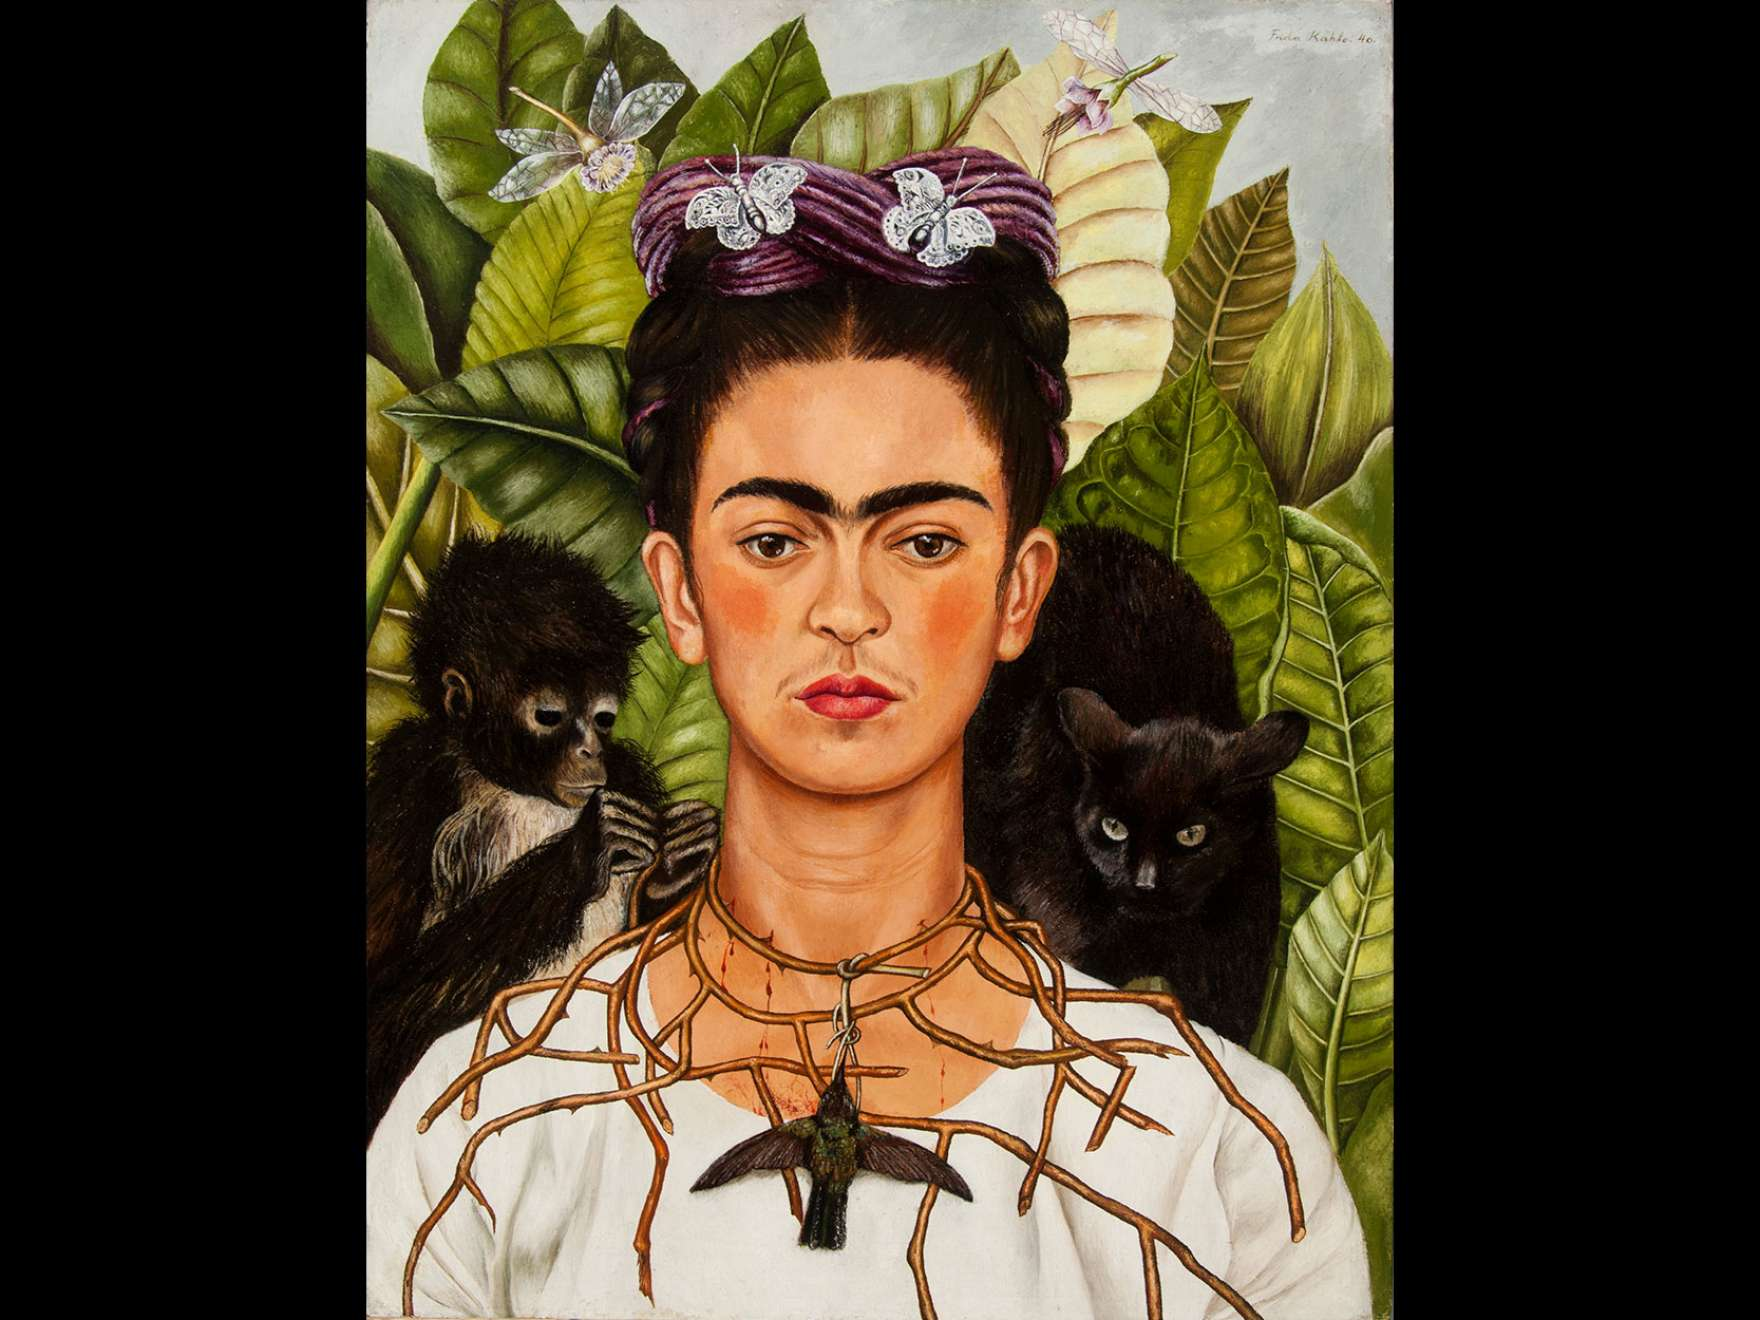 Frida Kahlo's painting, Self-Portrait with Hummingbird and Thorn Necklace